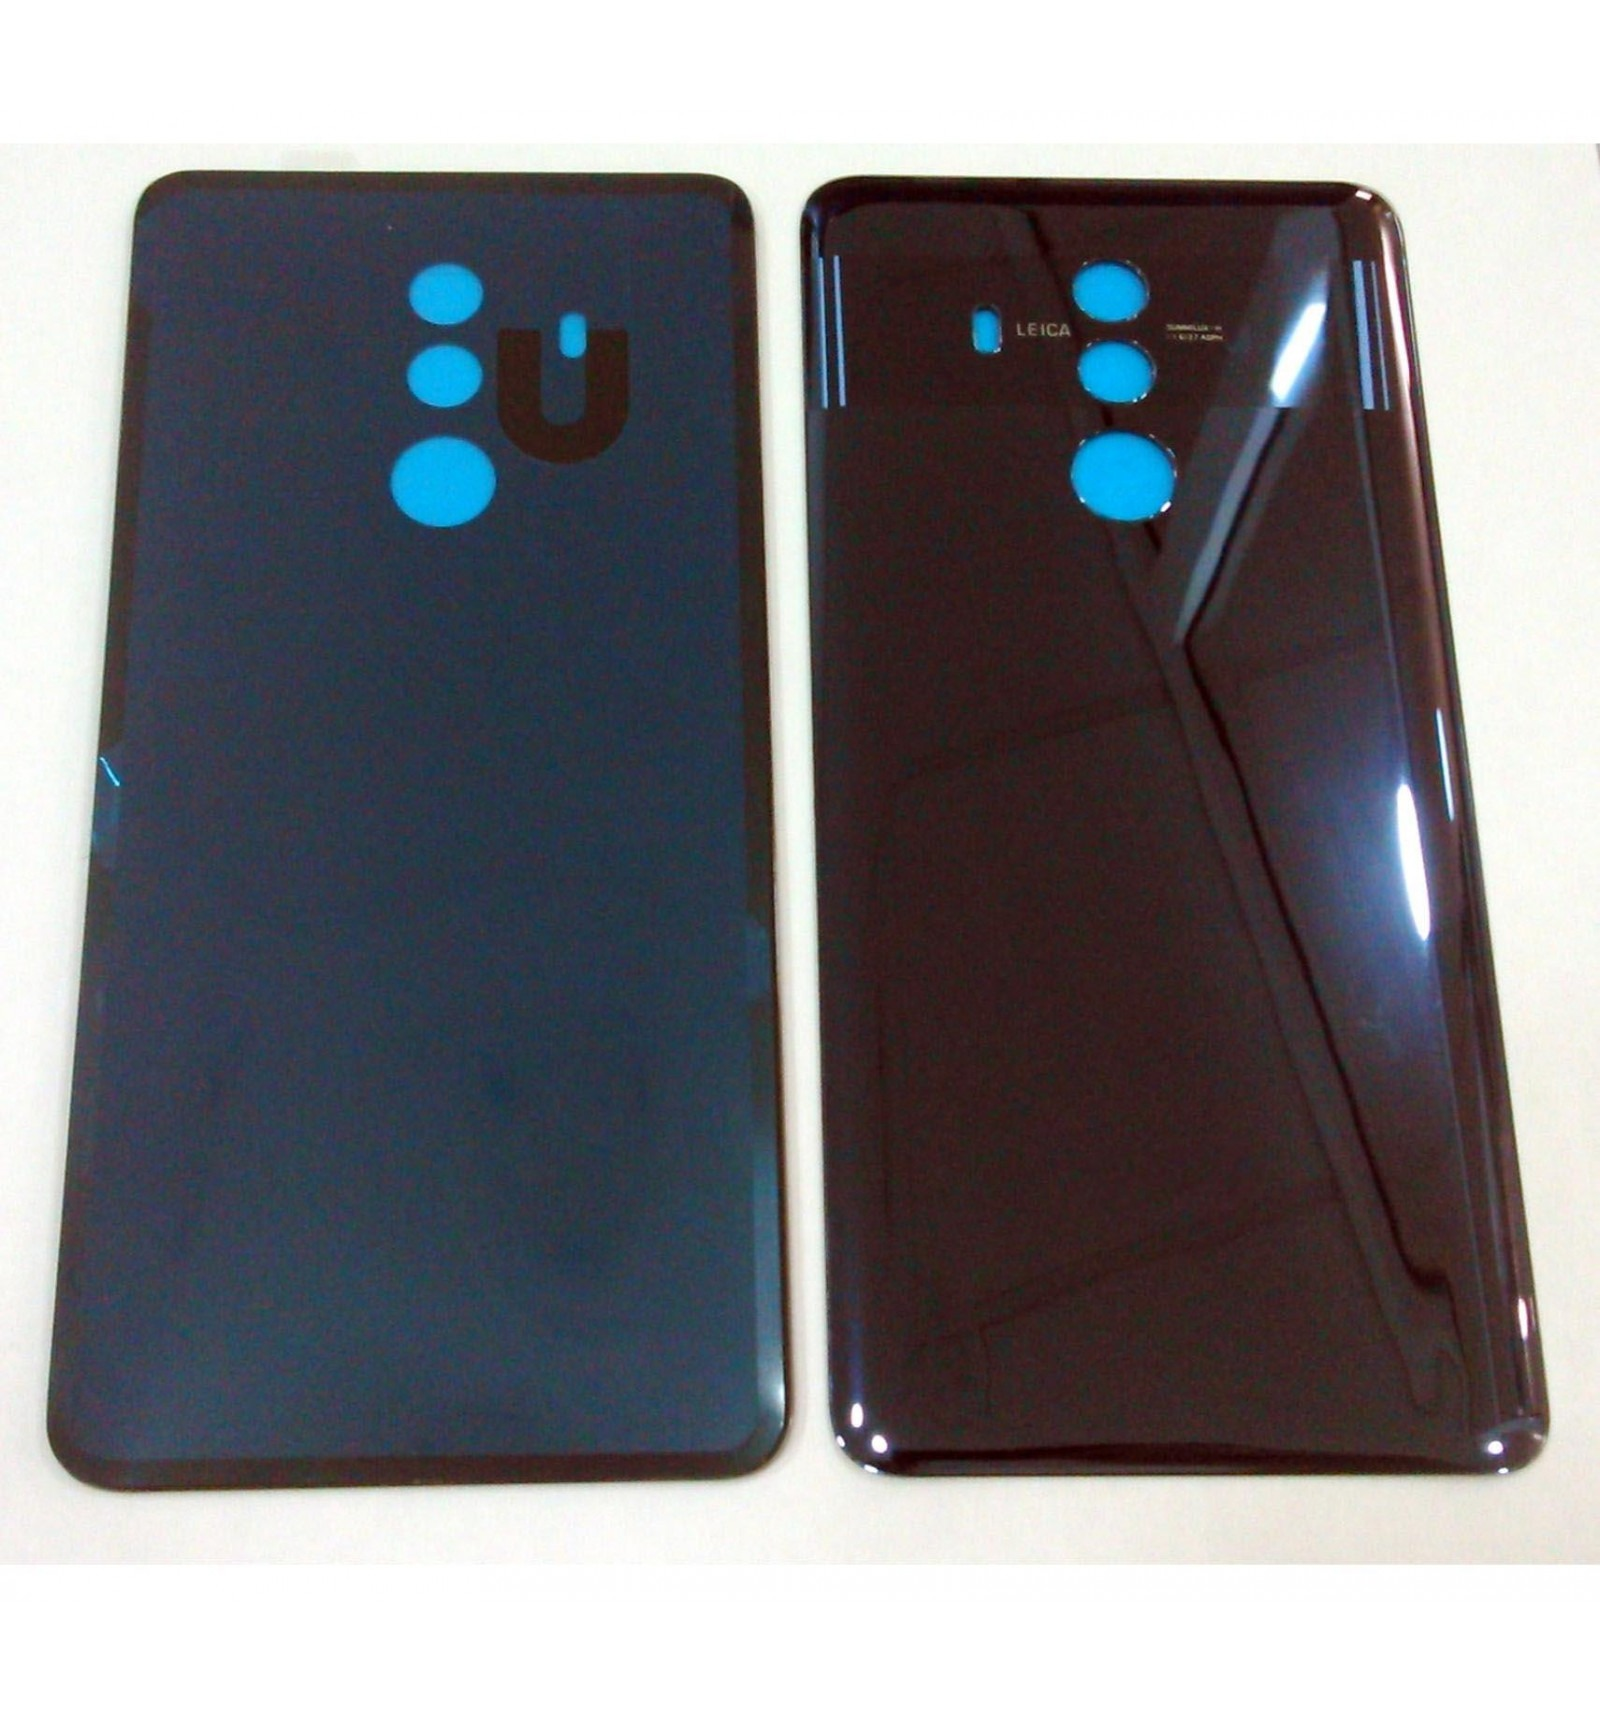 Huawei Mate 10 Pro Blue Battery Cover